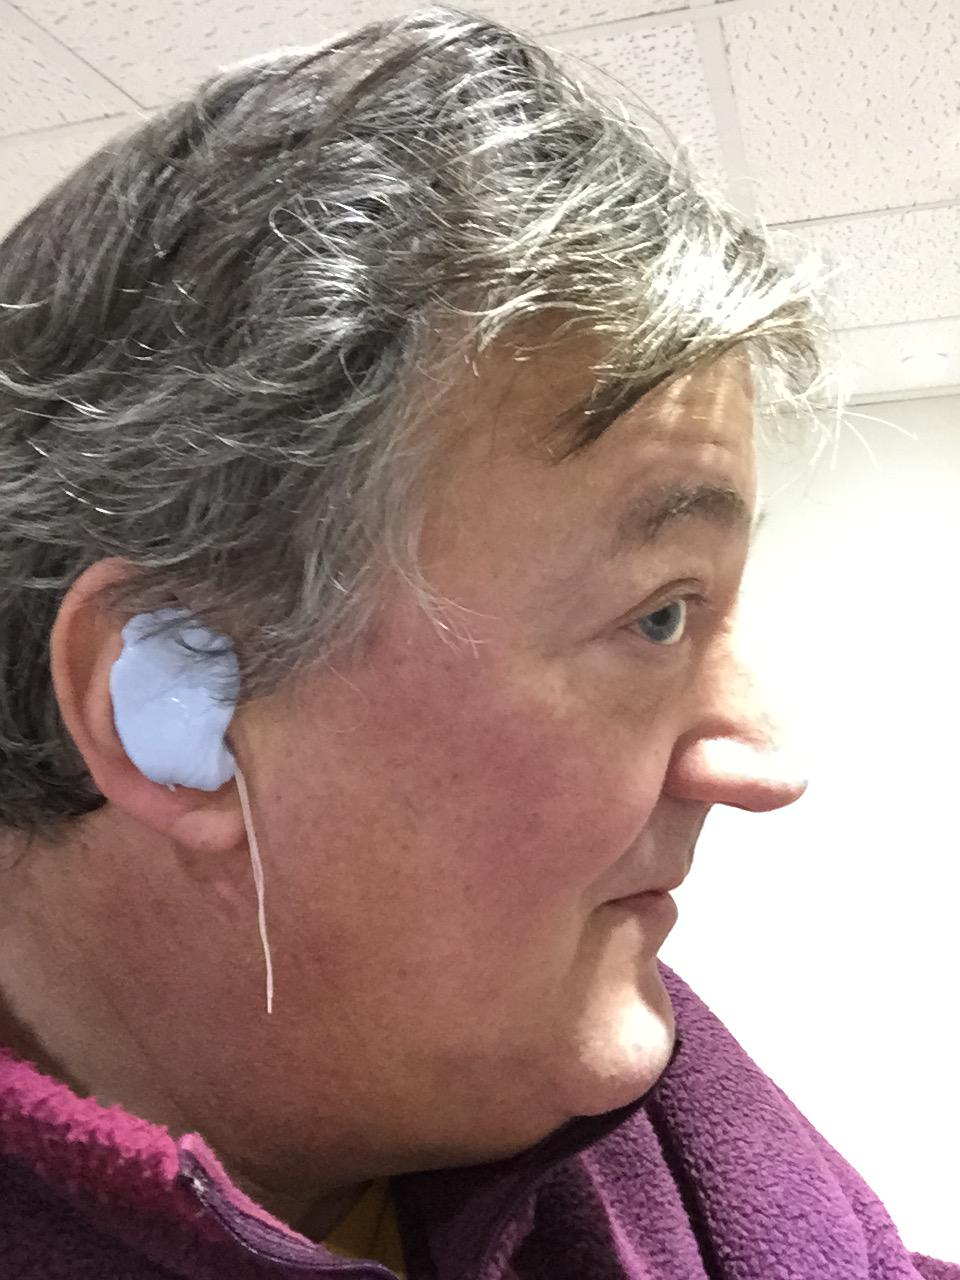 My old QI/BAFTA earpiece isn't what it was so I've been fitted for a new one by @HearingExpert … http://t.co/R7IvOU52gM